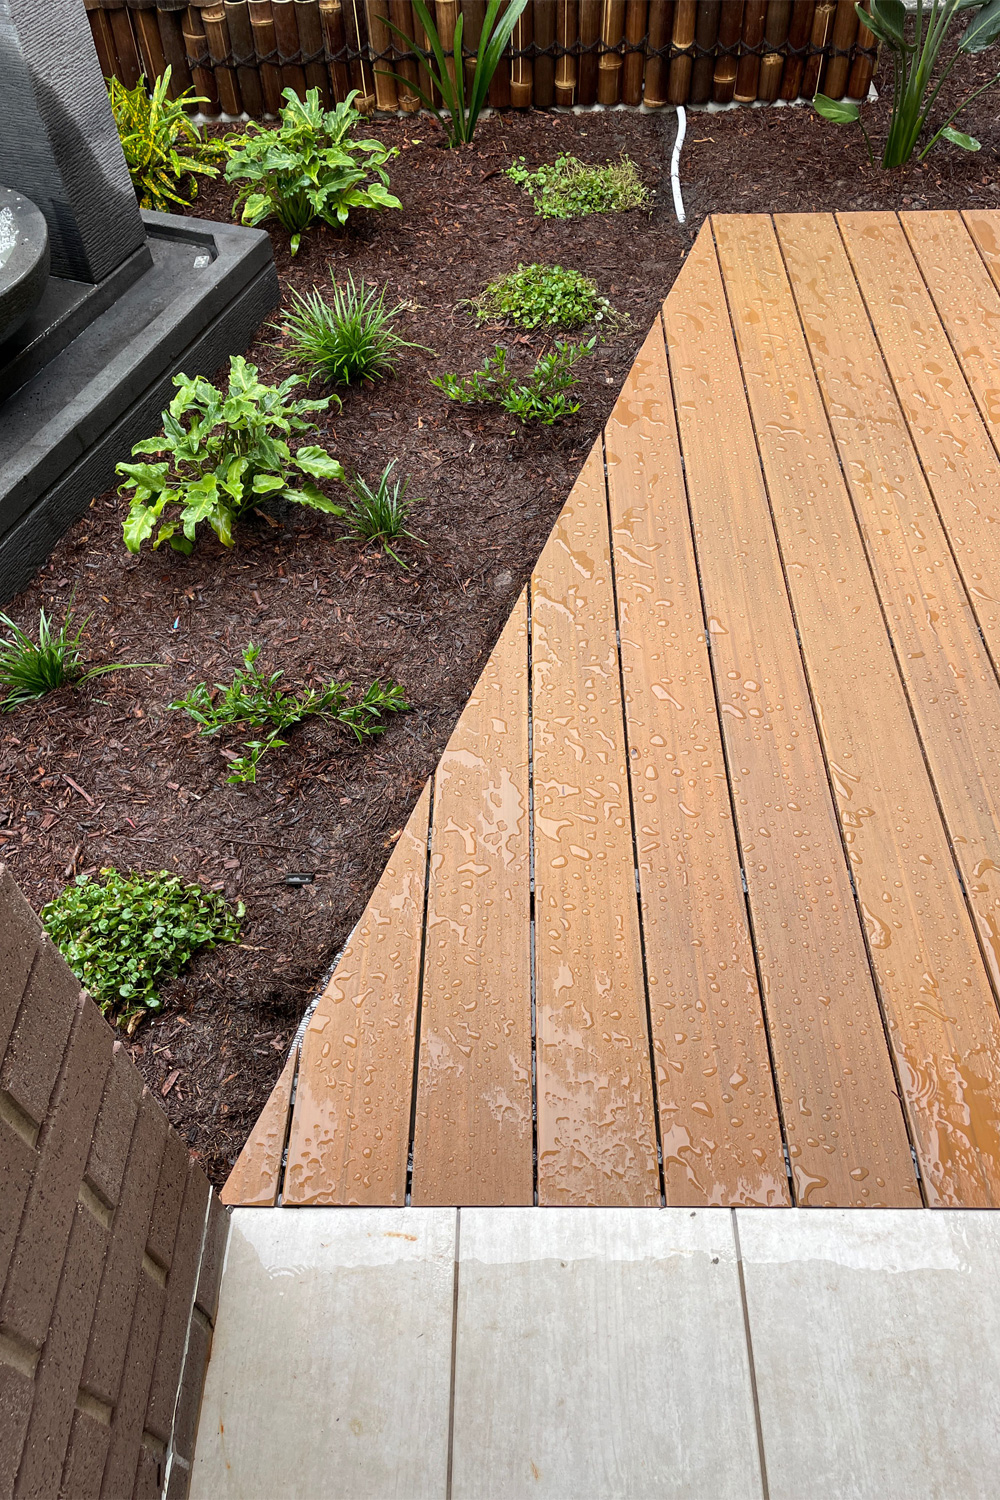 Future-proof your outdoor area with CleverDeck Xtreme from Futurewood